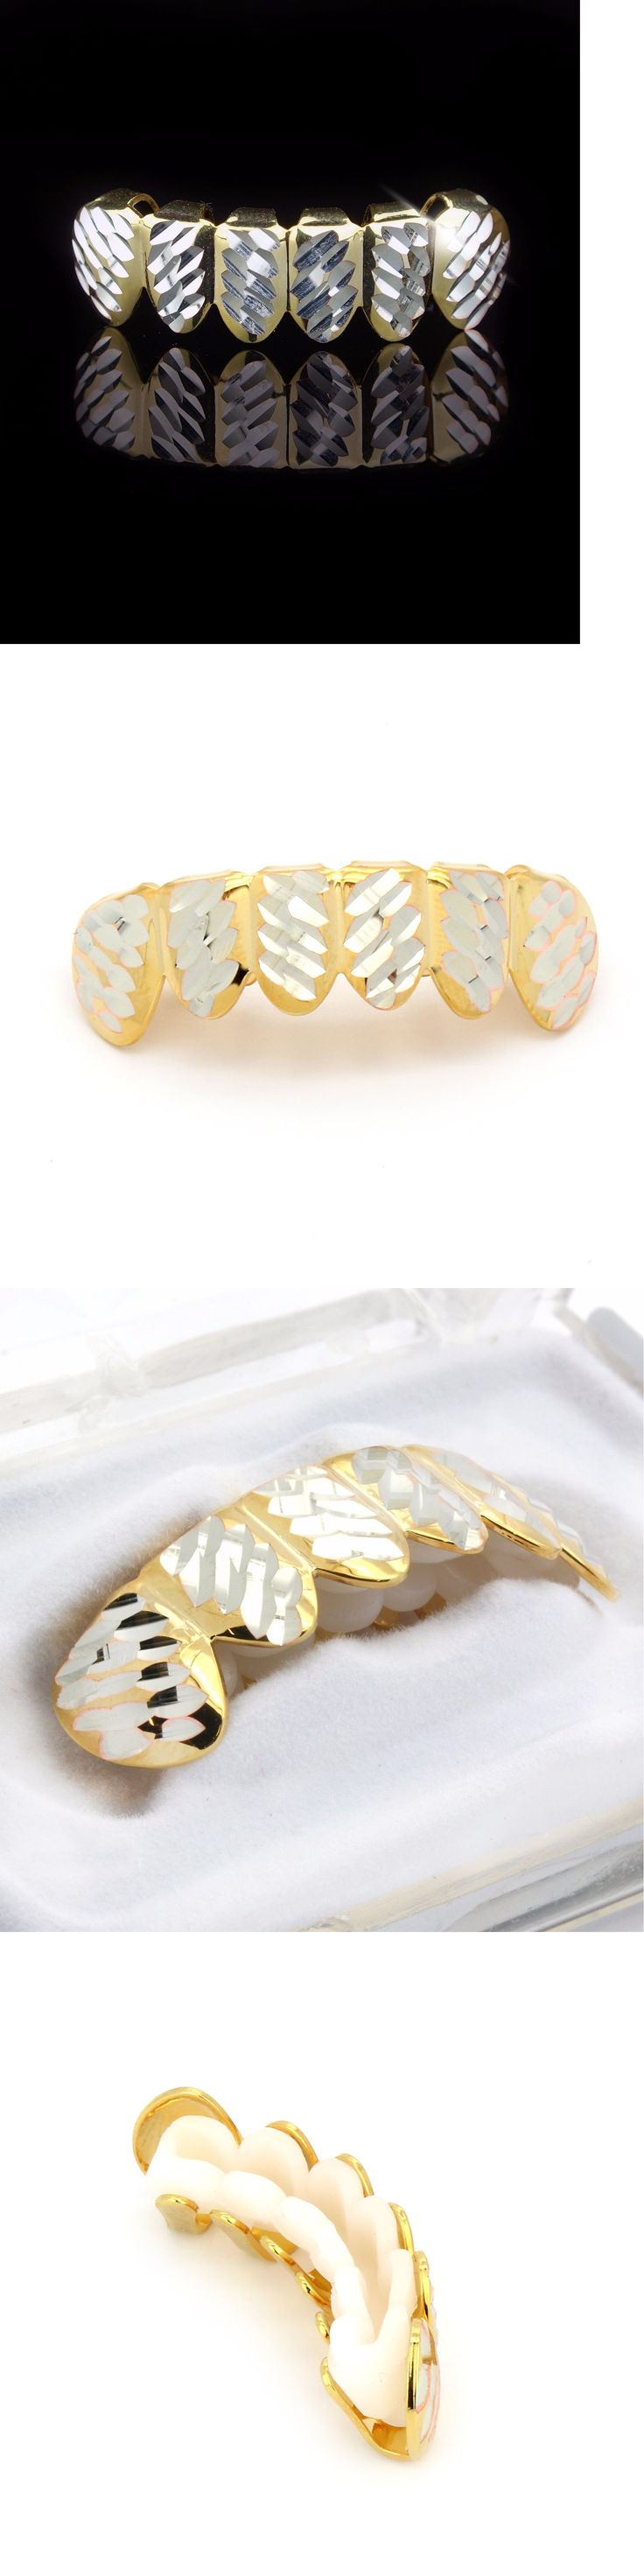 Grillz Dental Grills 152808: 14K Gold Plated Hip Hop Jewerly Diamond Cut Side Cap Teeth Grillz Bottom BUY IT NOW ONLY: $250.0